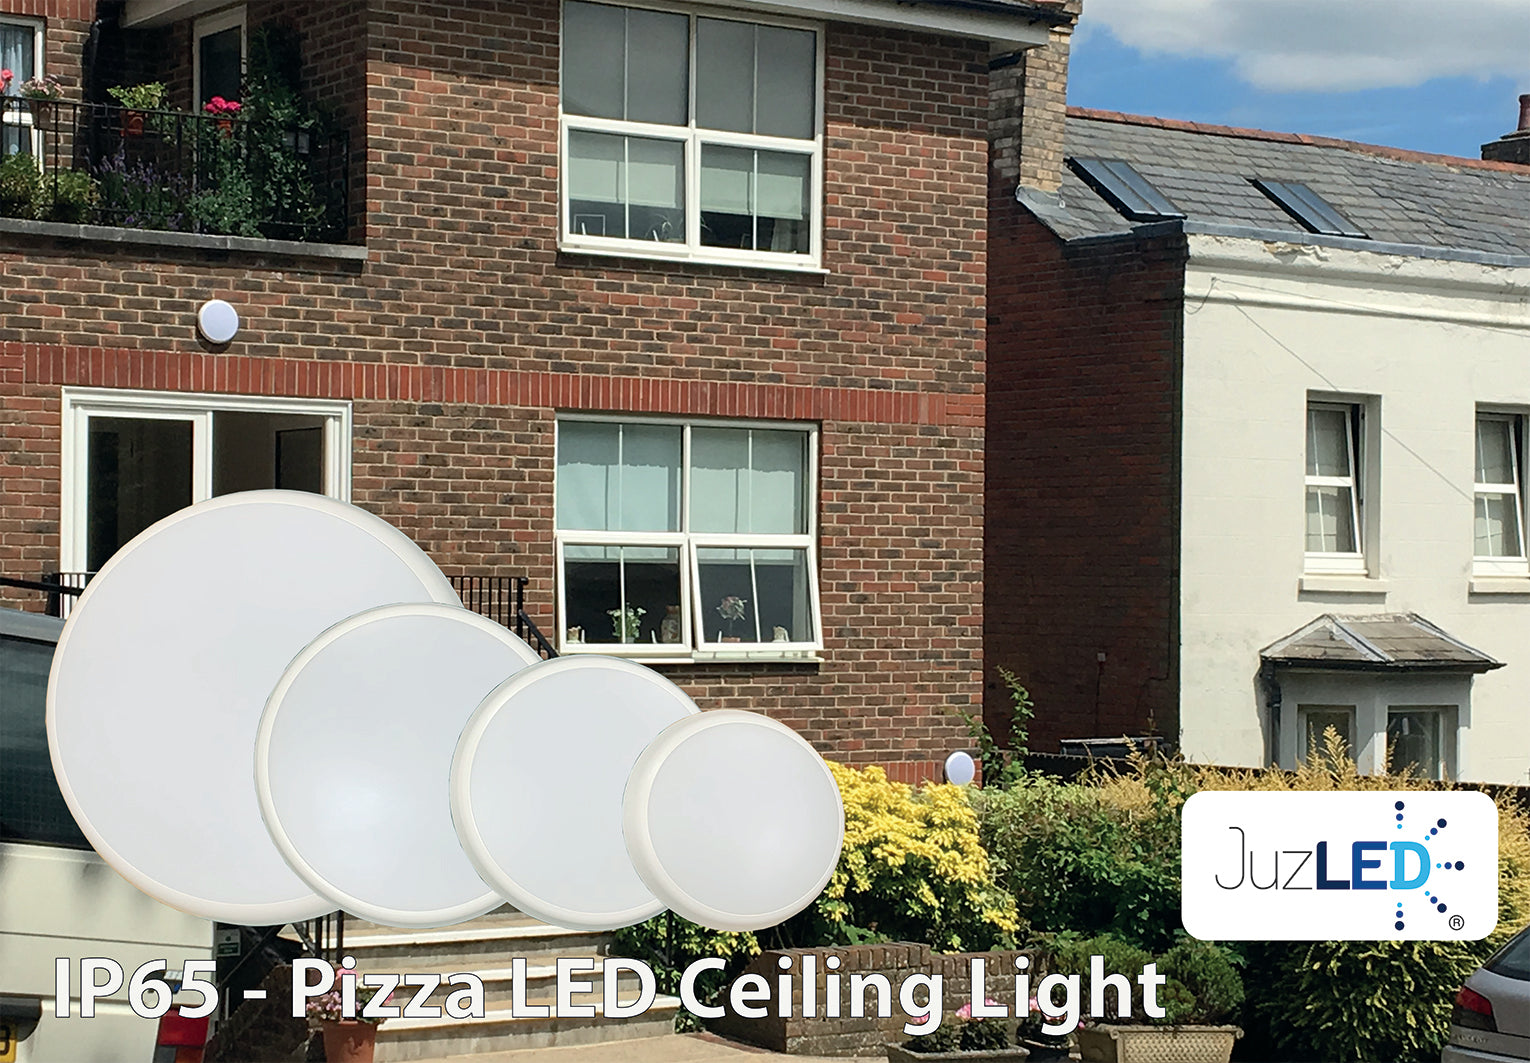 JustLED - IP54 Pizza LED Ceiling & Wall lamp [Energy Class A+]